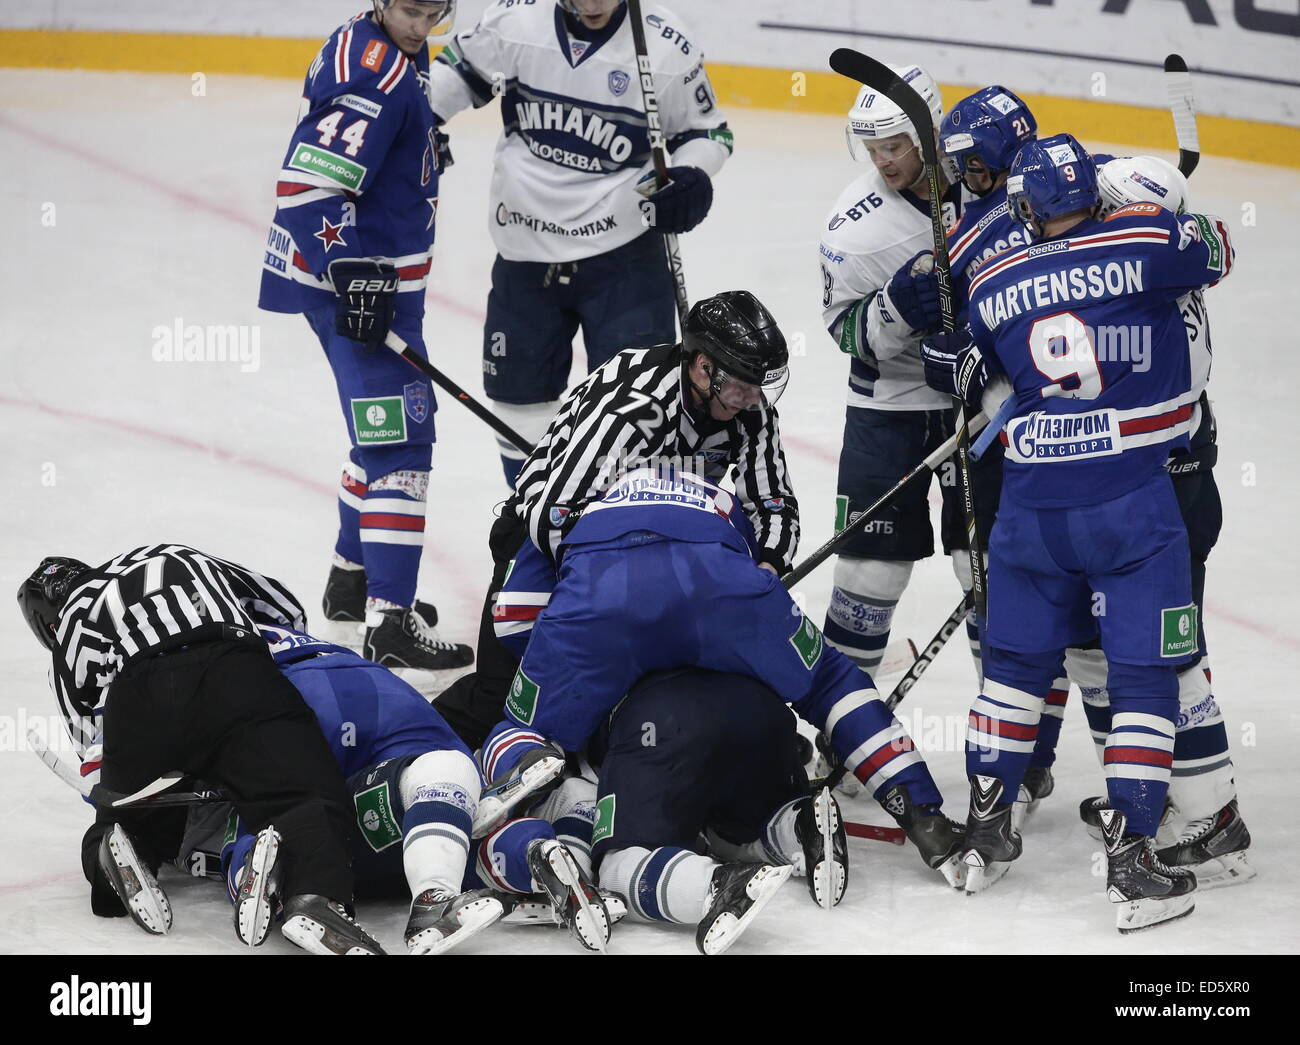 St. Petersburg, Russia. 28th Dec, 2014. SKA's and Dynamo's players fight in their 2014/2015 KHL Regular Season ice Stock Photo